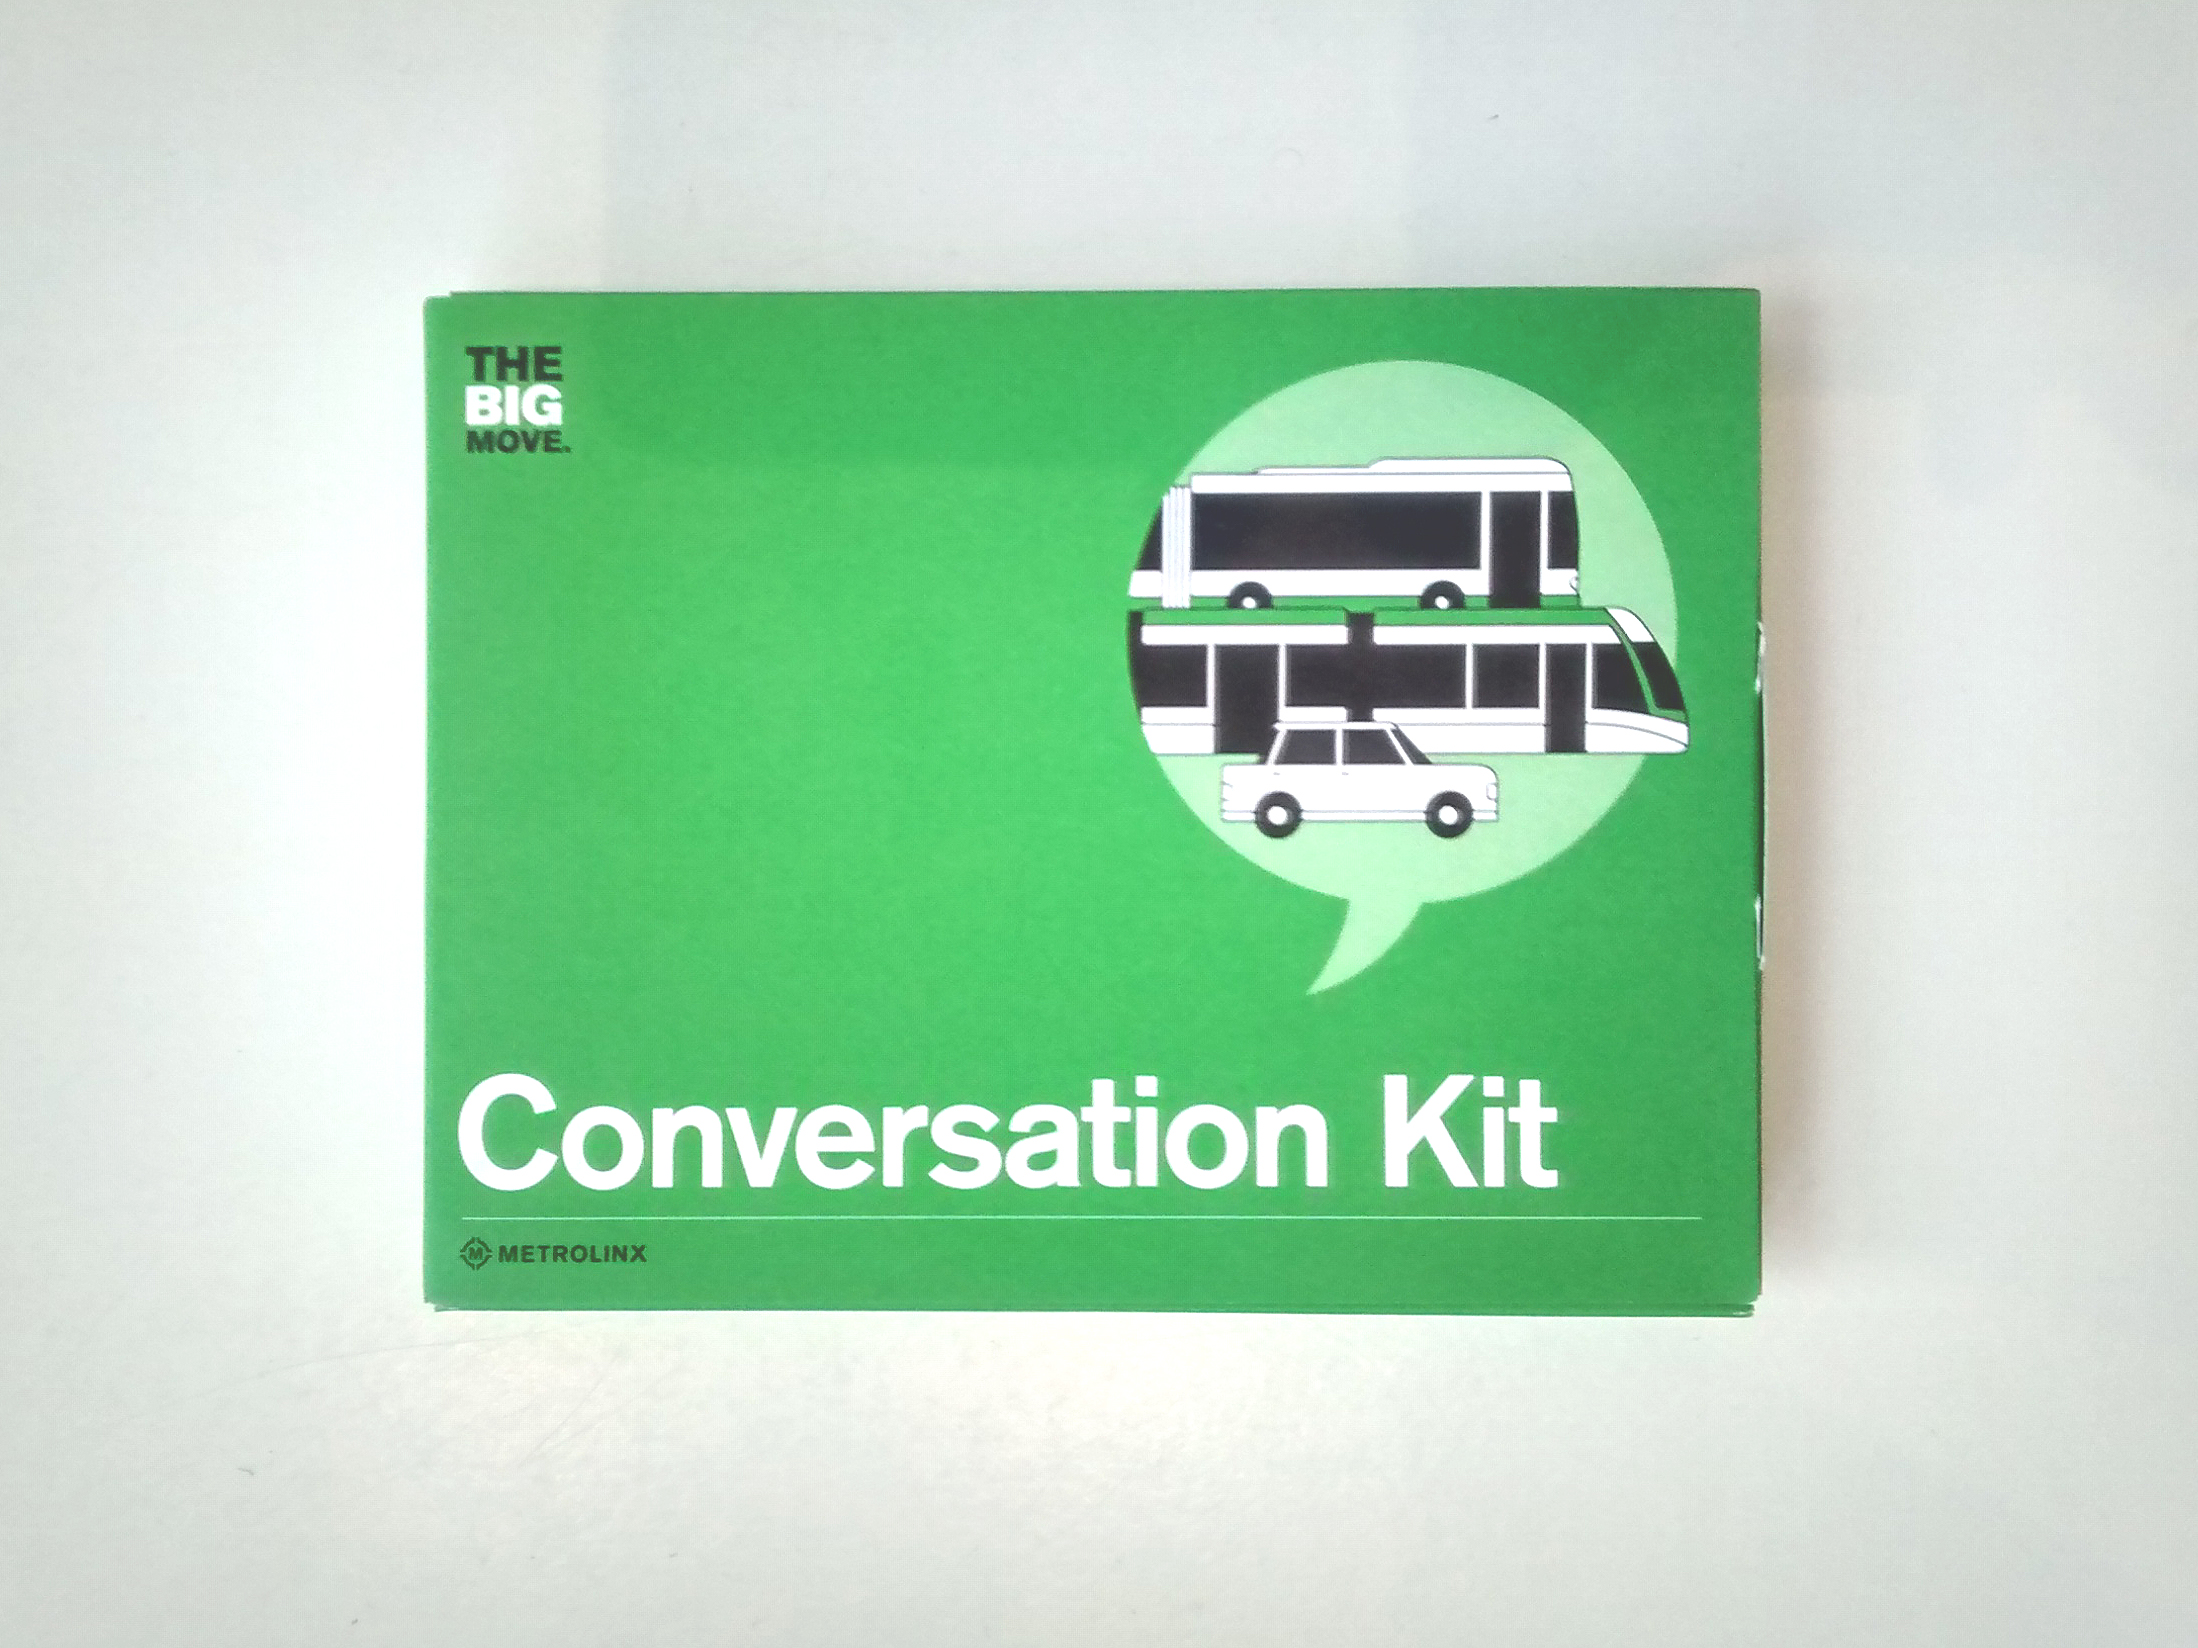 Over 1,000 Big Move Conversation Kits were distributed throughout the consultation process.